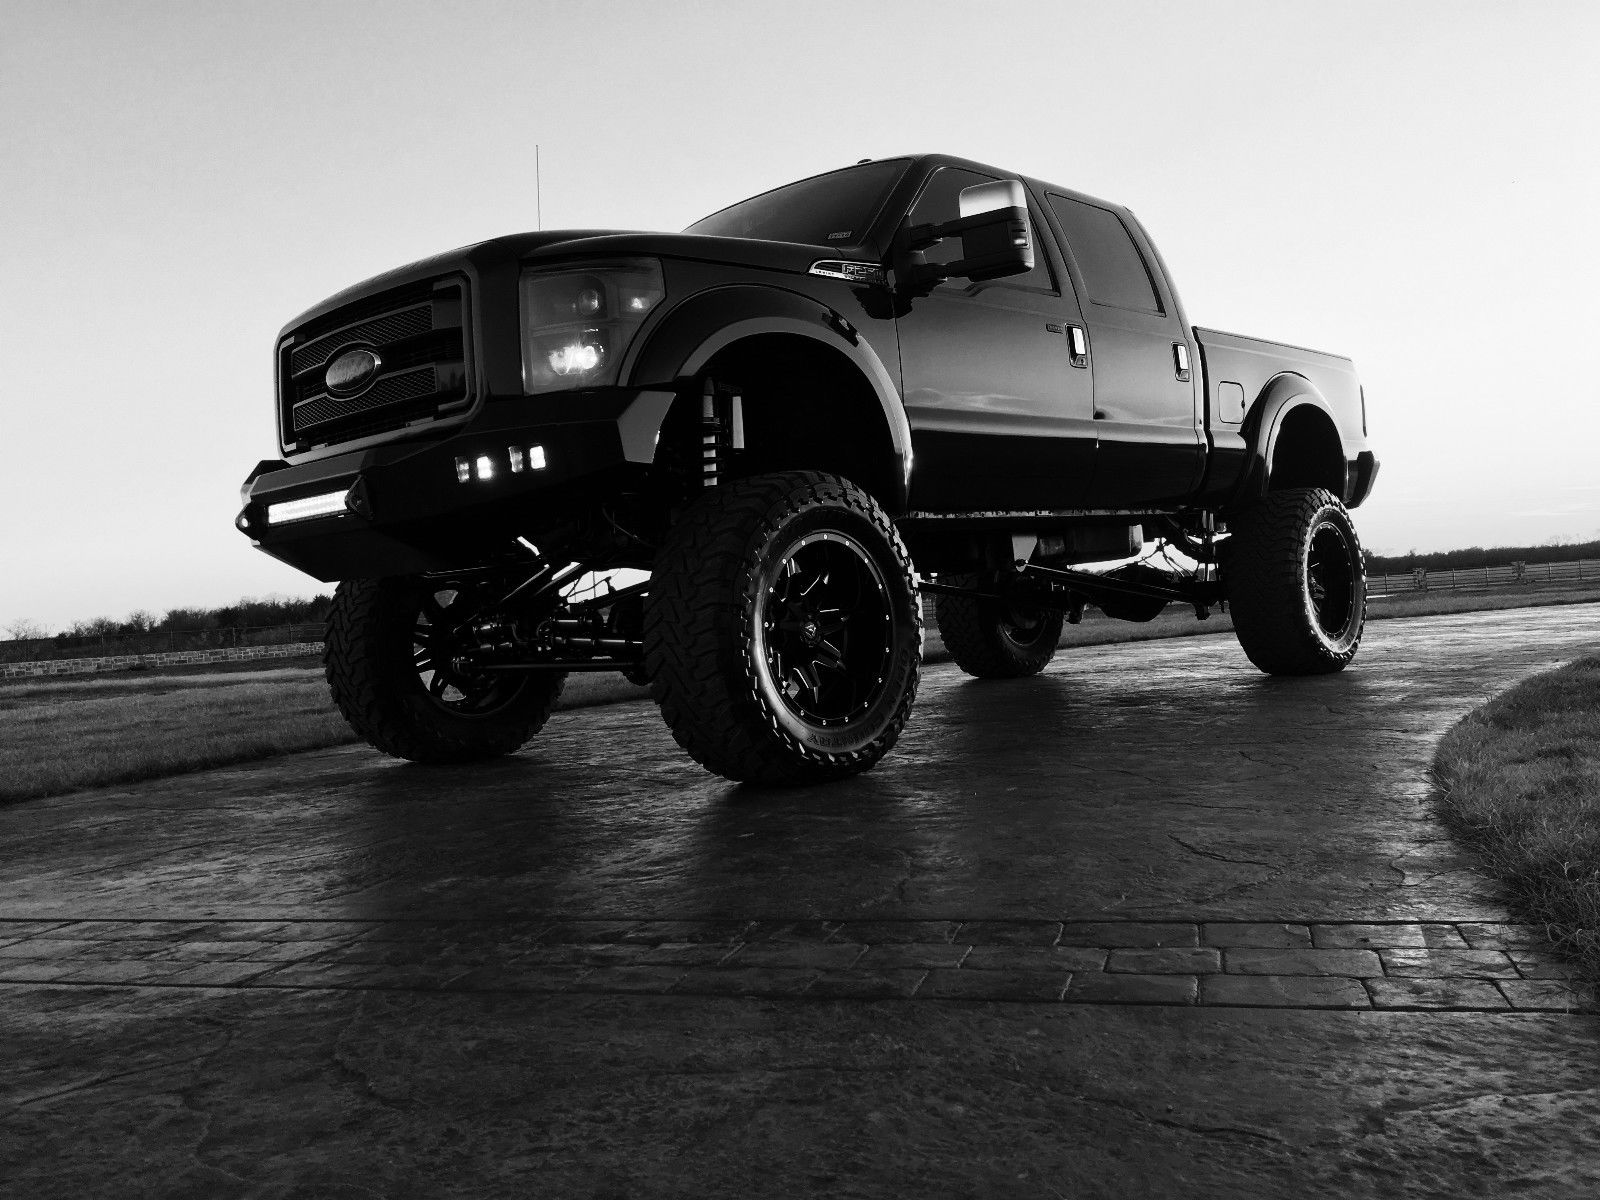 2015 Custom Ford F 250 4x4 Monster Truck For Sale